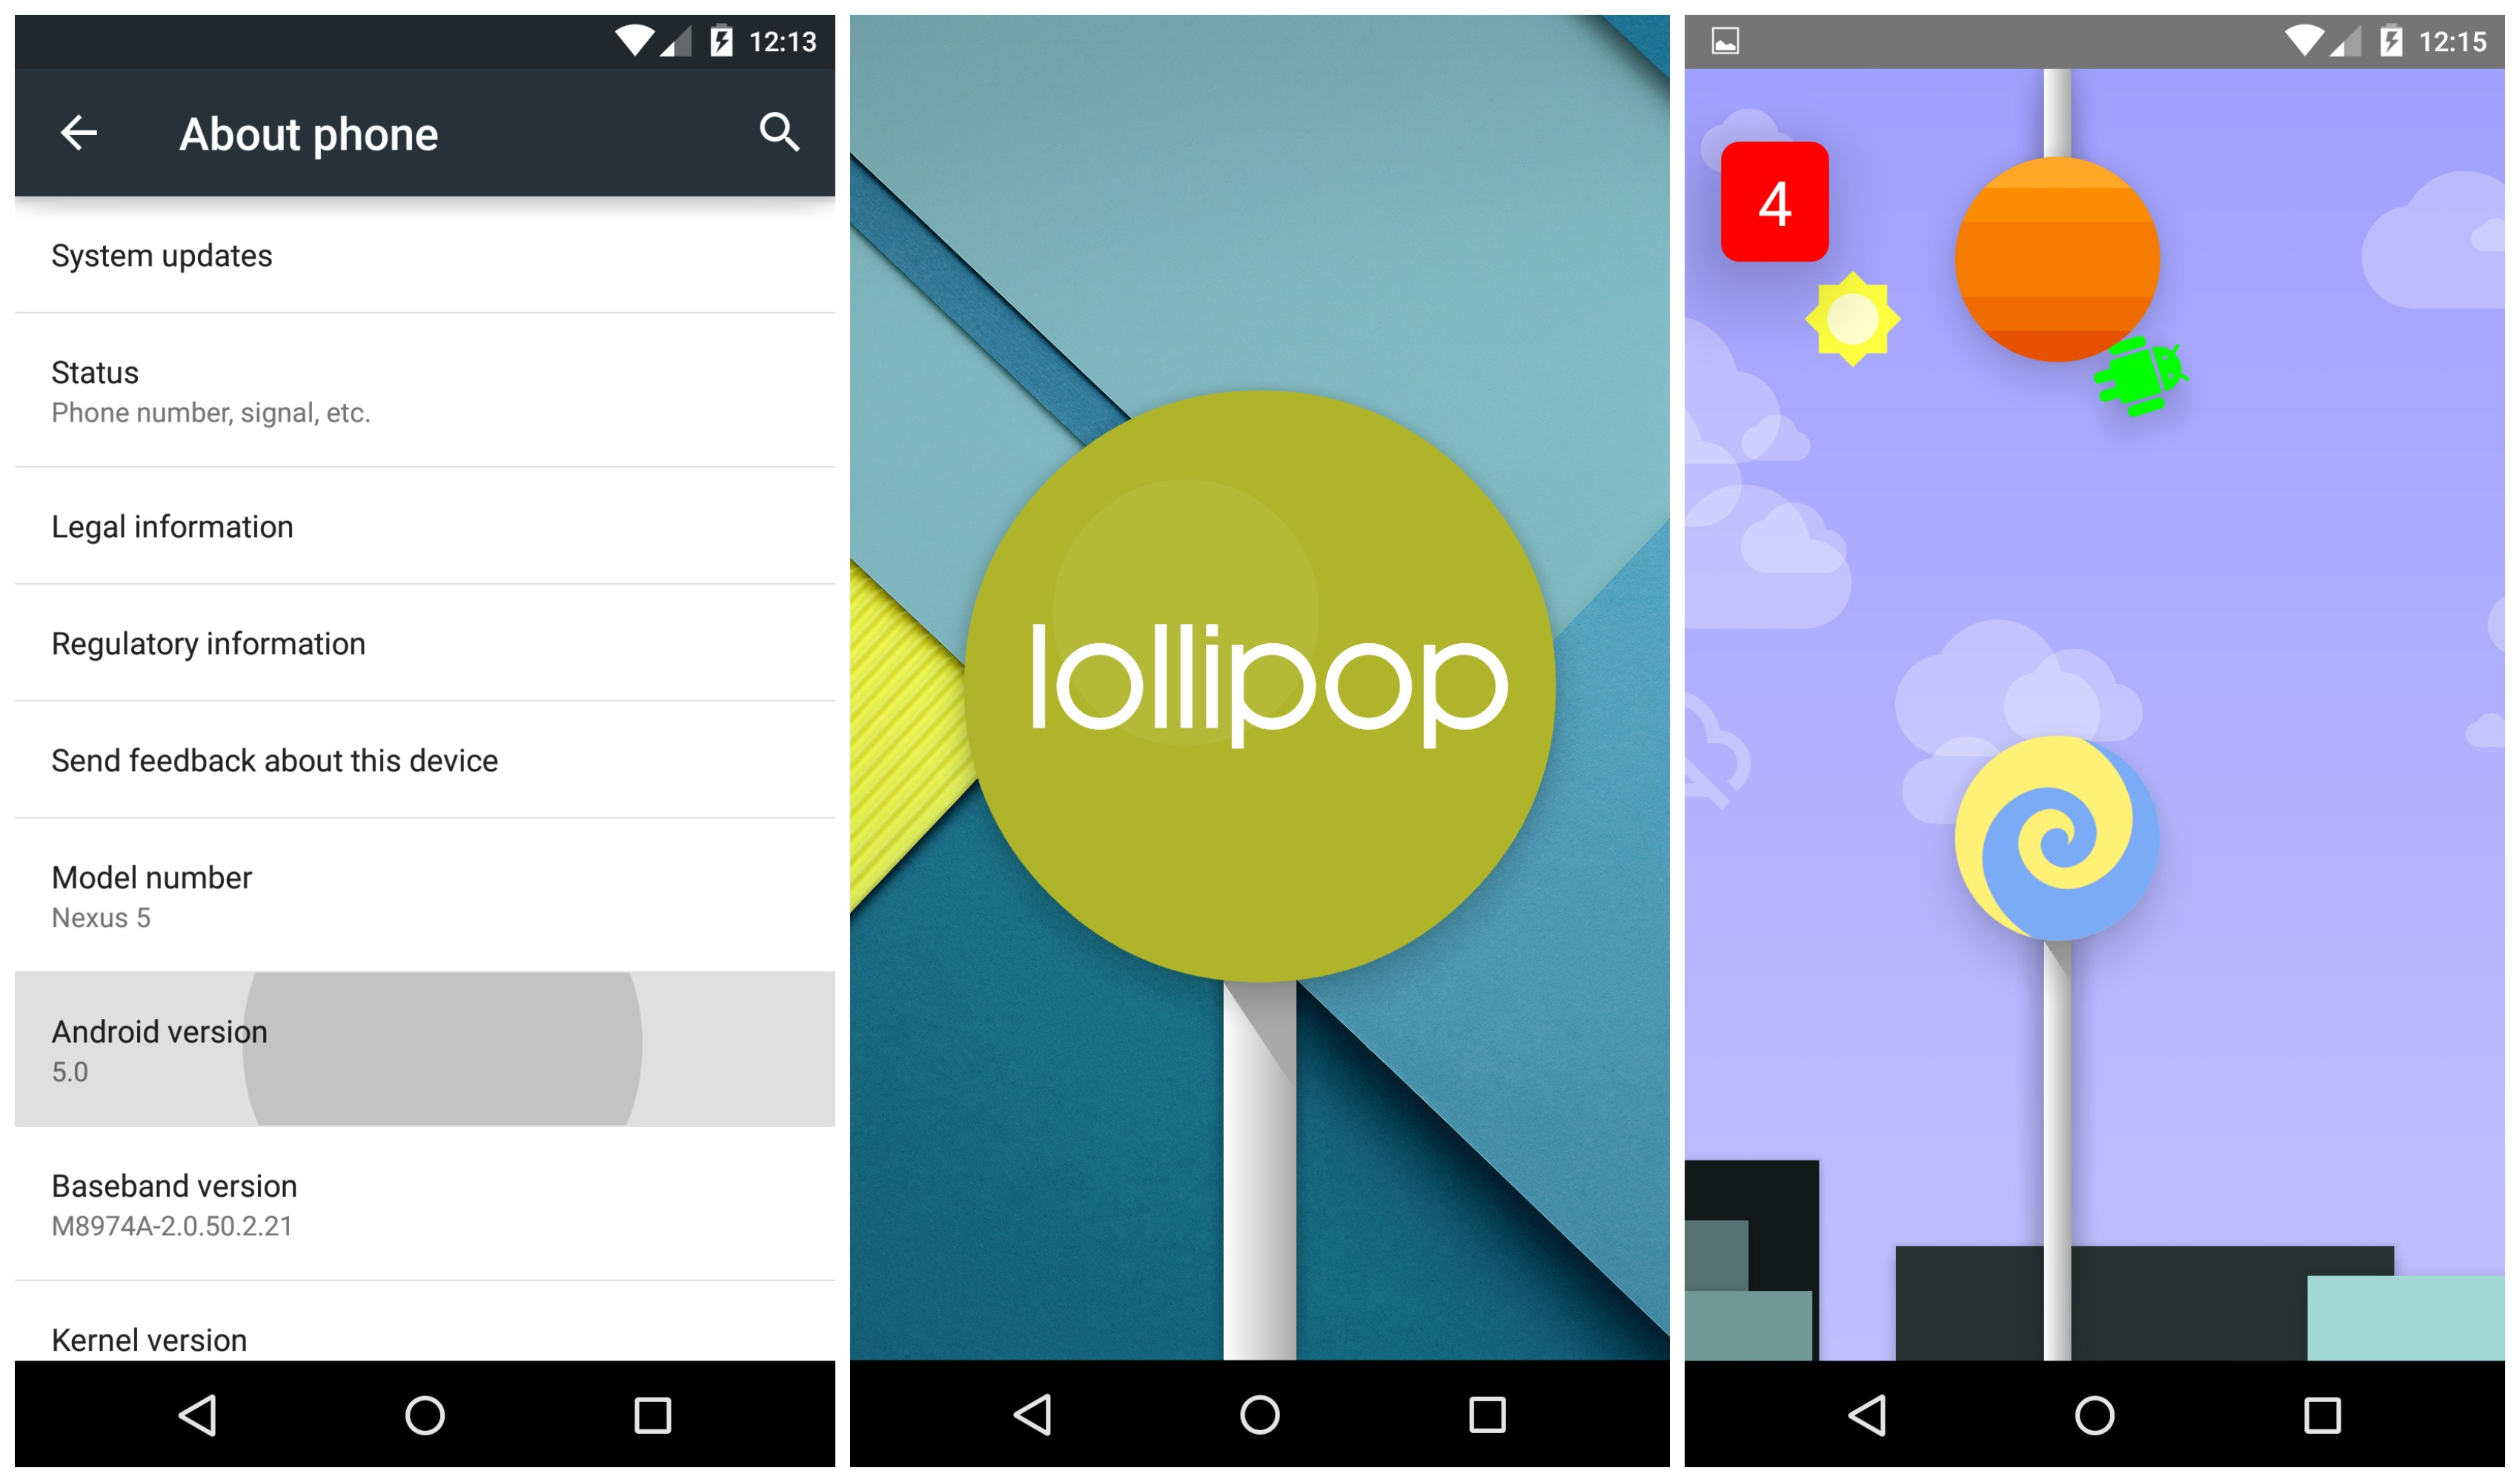 Android 5 0 1 lollipop and 5 0 2 update for nexus devices android - Android 5 0 Lollipop Hidden Game Easter Egg